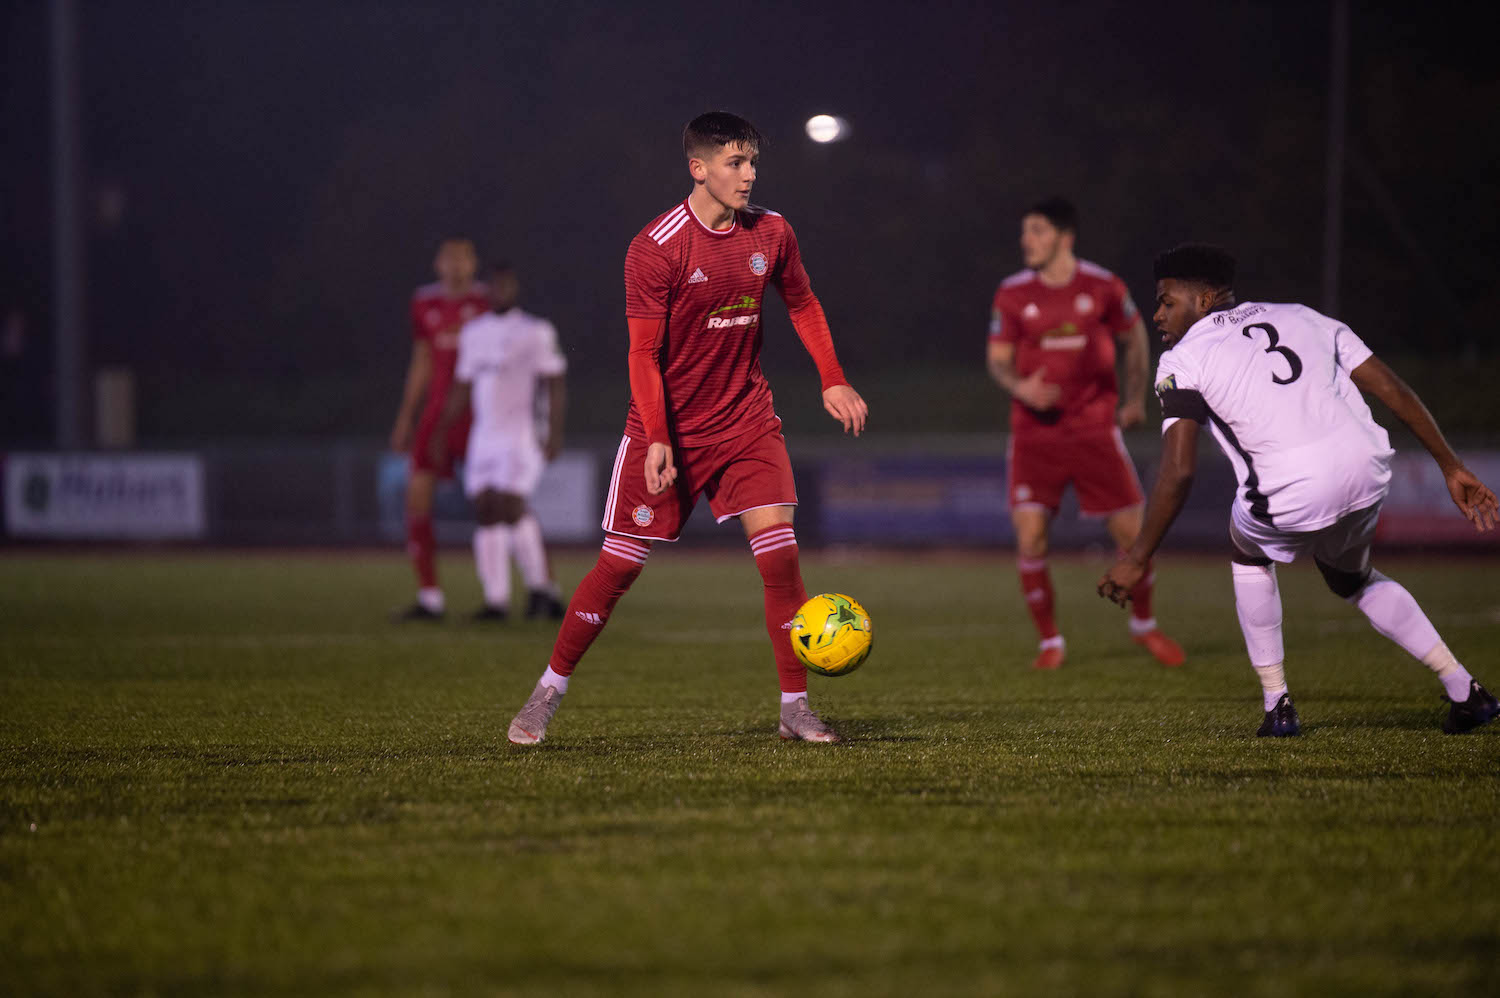 Read the full article - FIVE FACTS | Carshalton Athletic